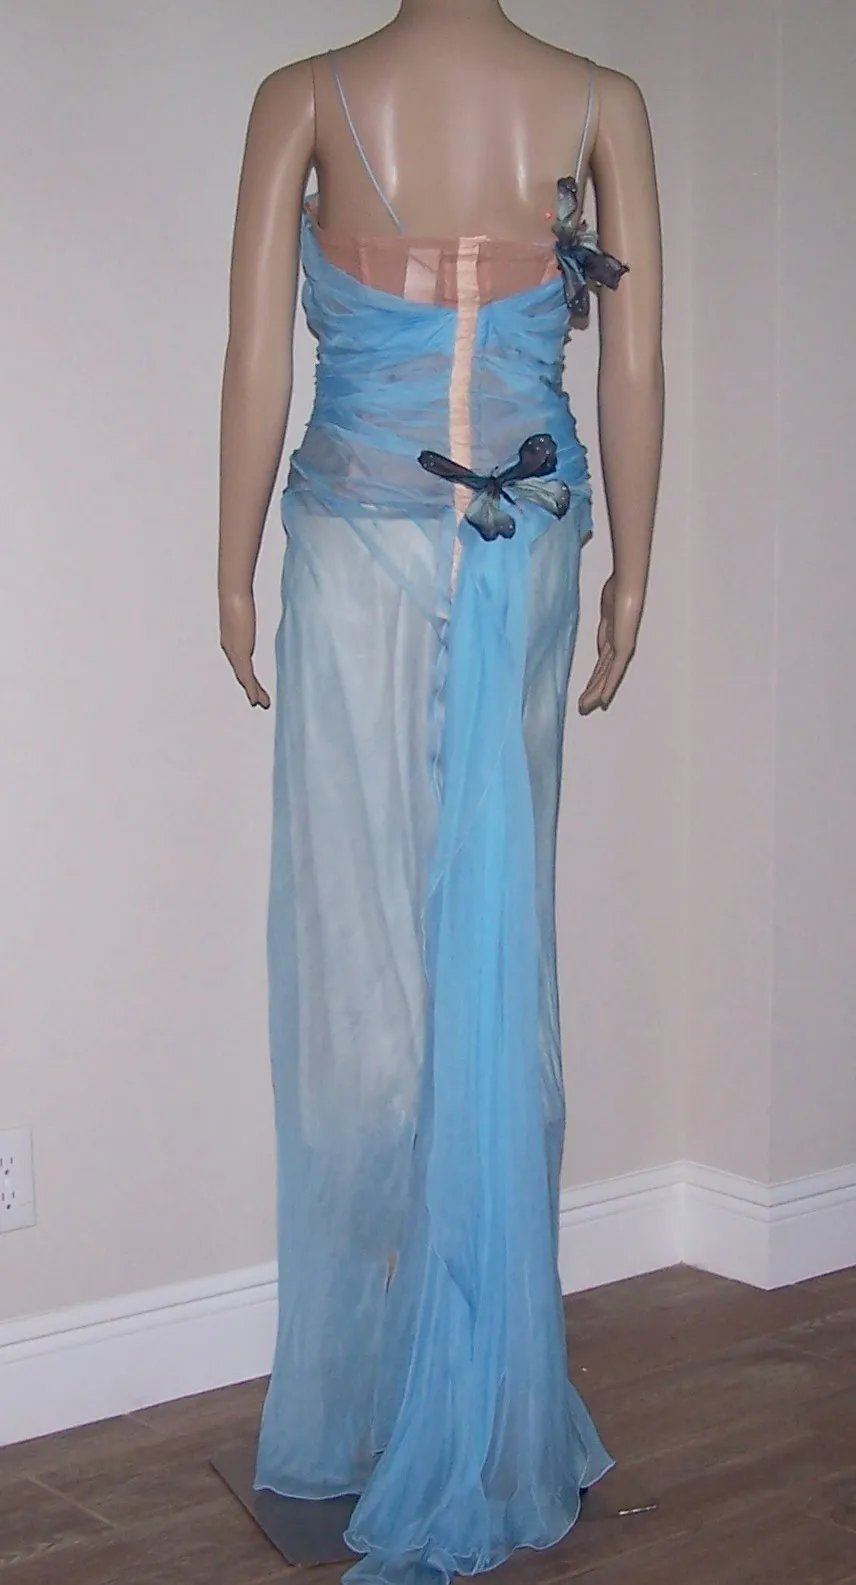 3d83db9df4c2 DOLCE & GABBANA 1998 Blue Chiffon Butterfly Gown w/Train Sz. 44/6. Click to  expand